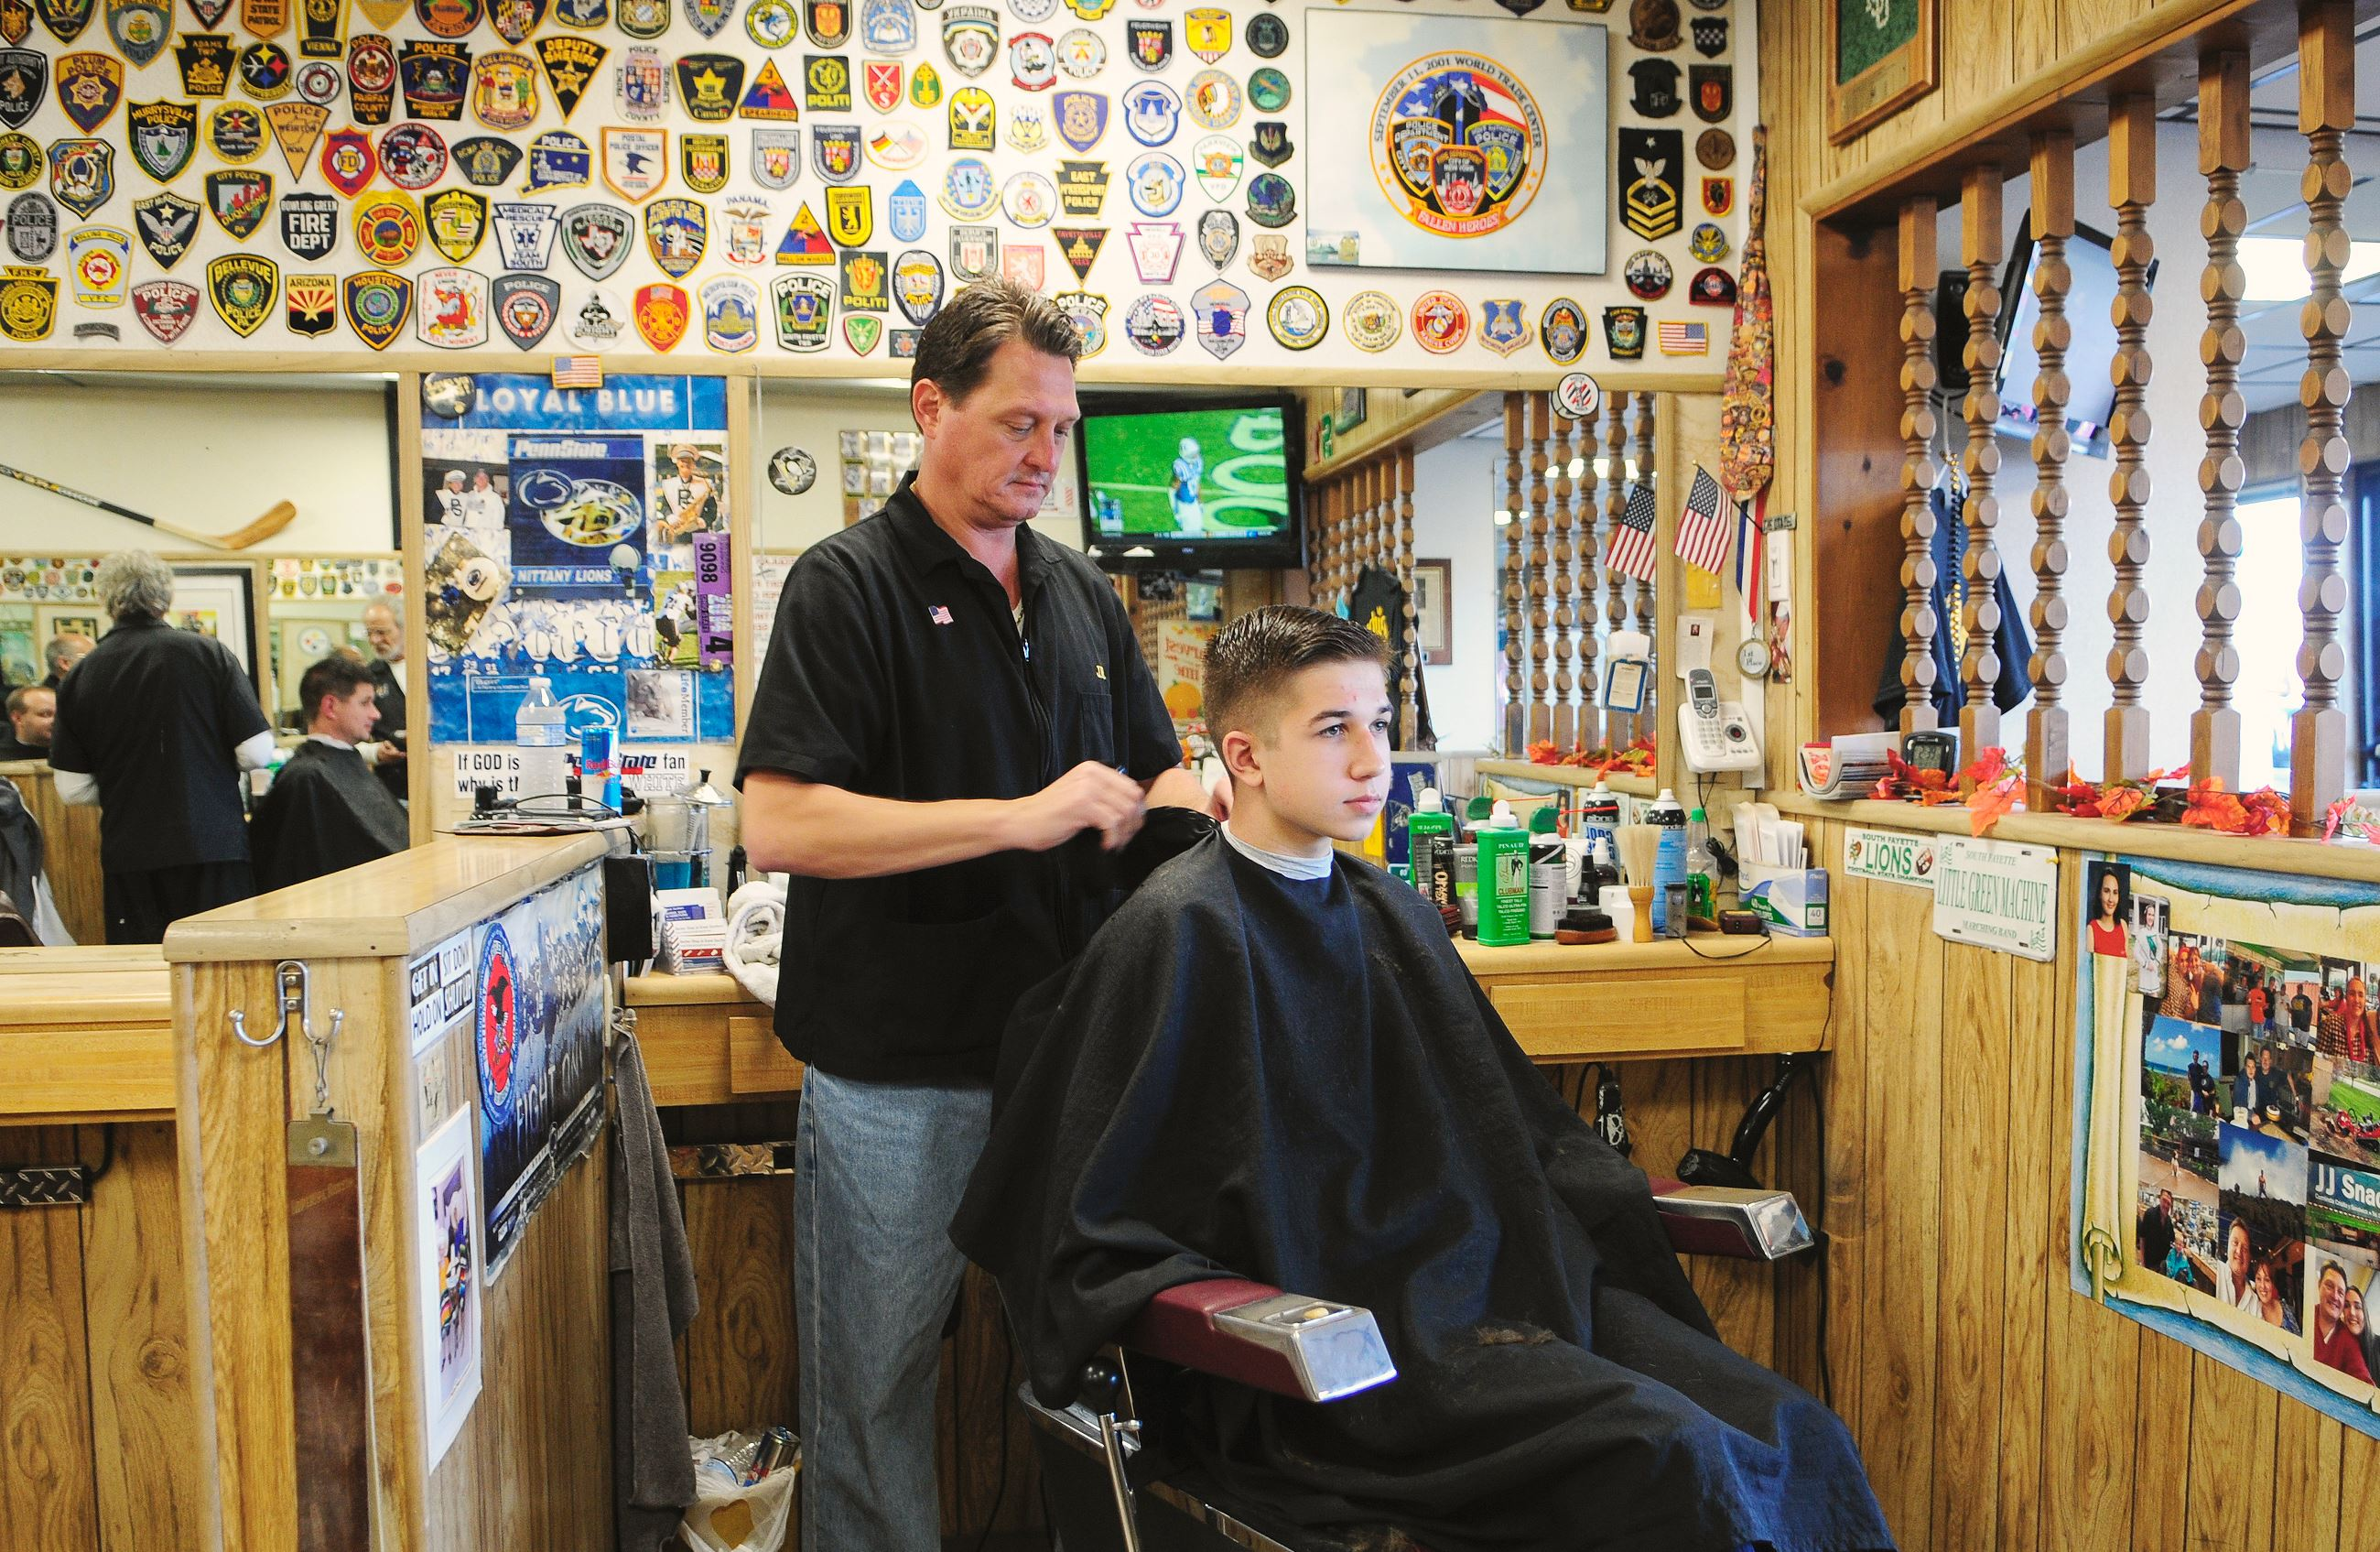 haircut in Mr. Hoffman?s barber shop, the Great Southern Barber ...